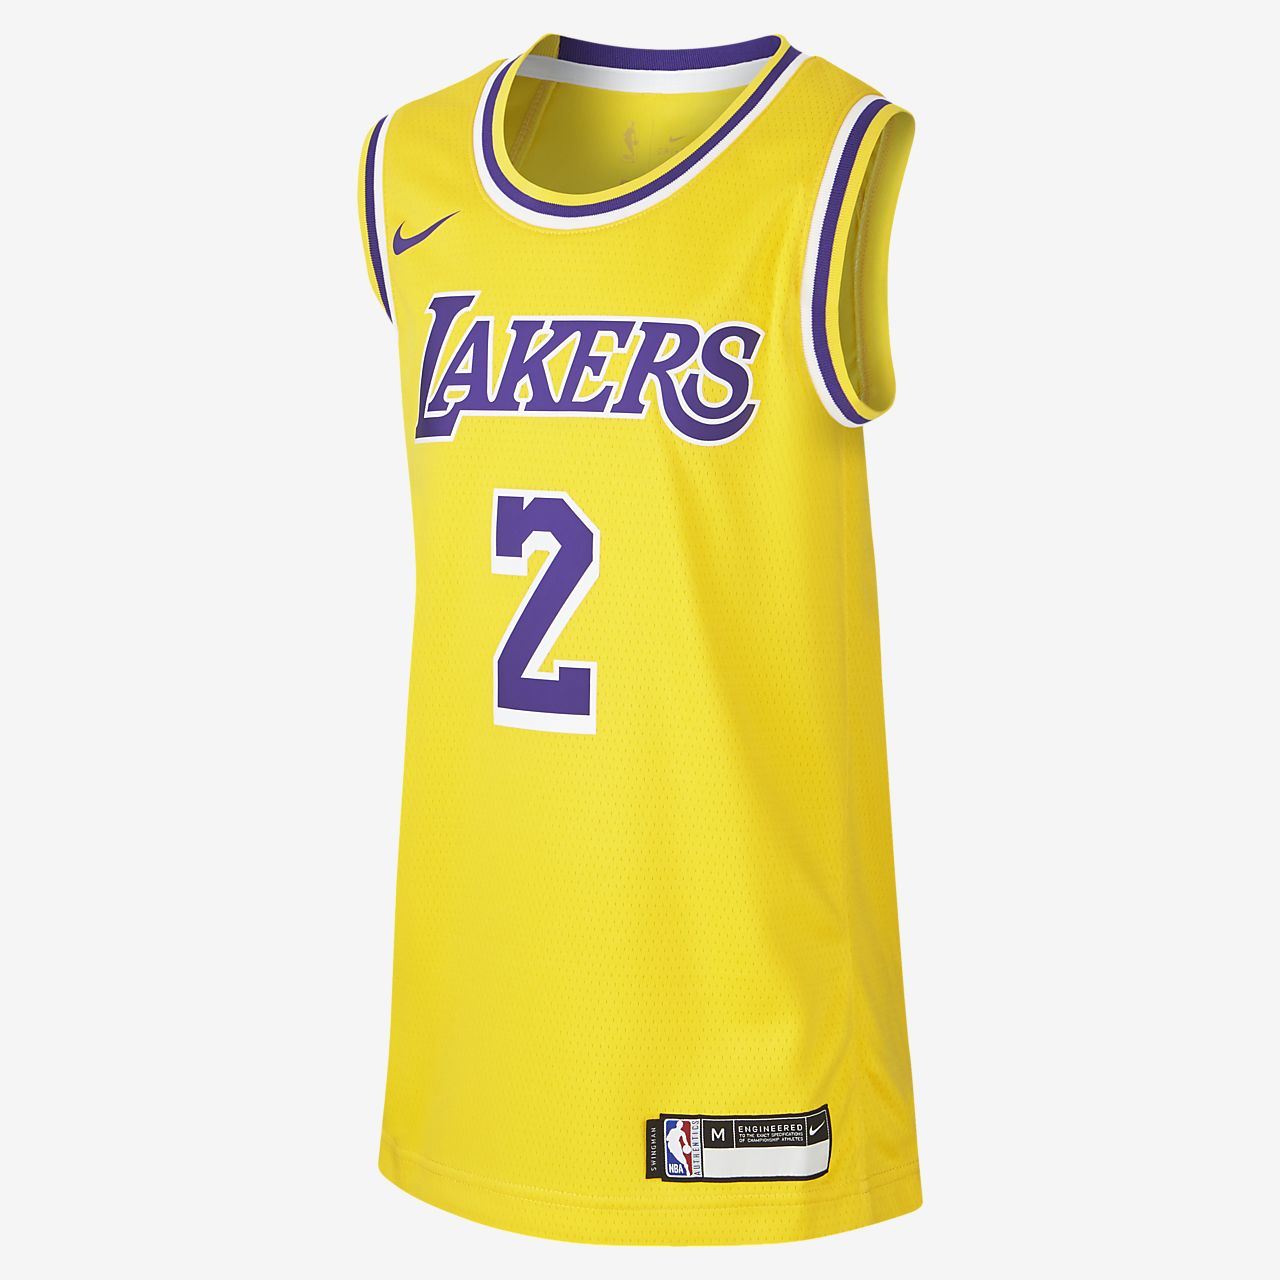 1bc5f476 Older Kids' NBA Jersey. Lonzo Ball Los Angeles Lakers Nike Icon Edition  Swingman